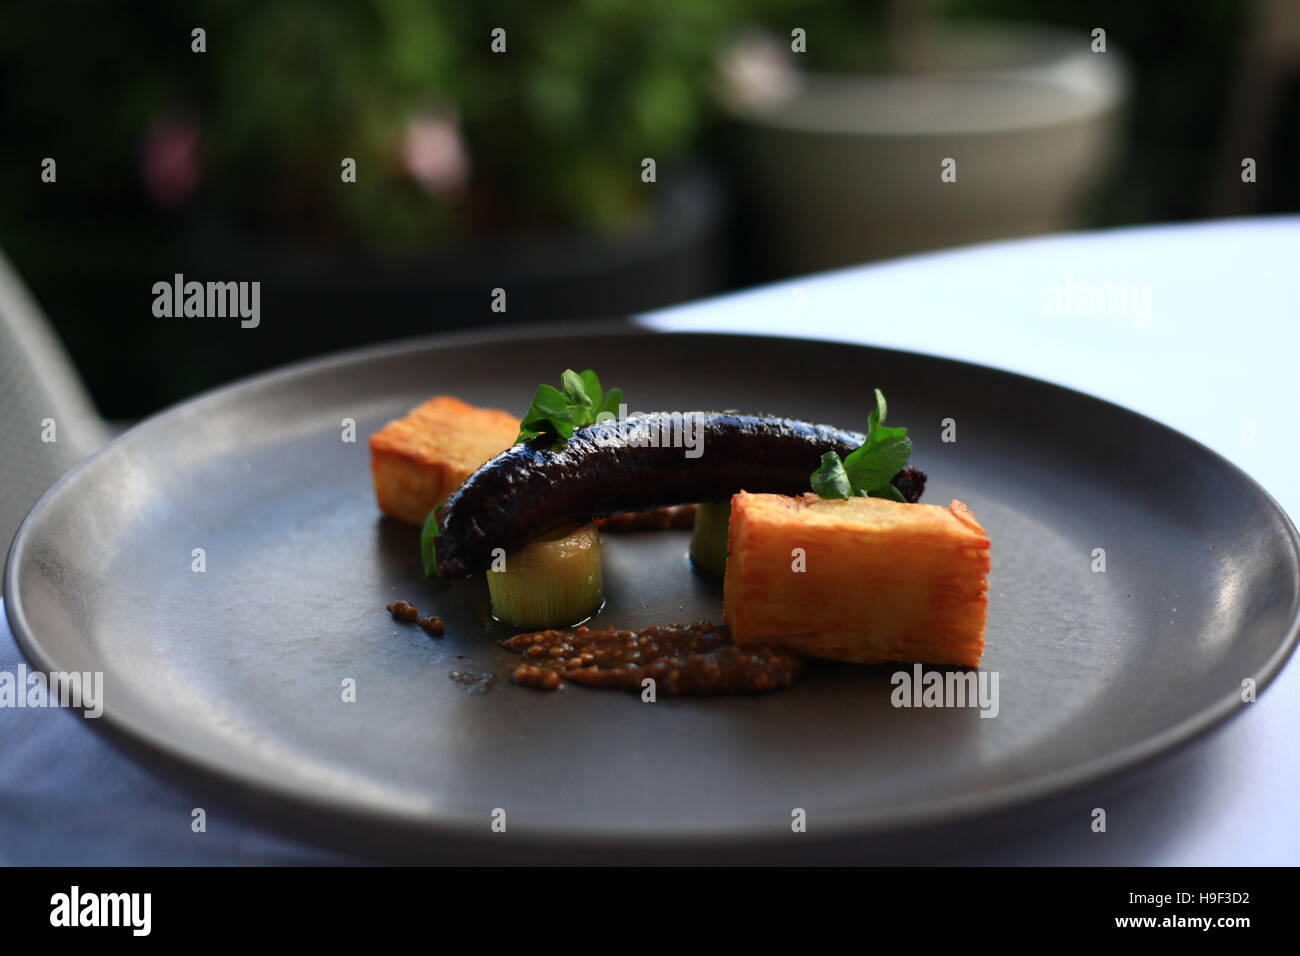 Black pudding sausage with mille feuille potato, caramelized leek and grainy mustard - Stock Image